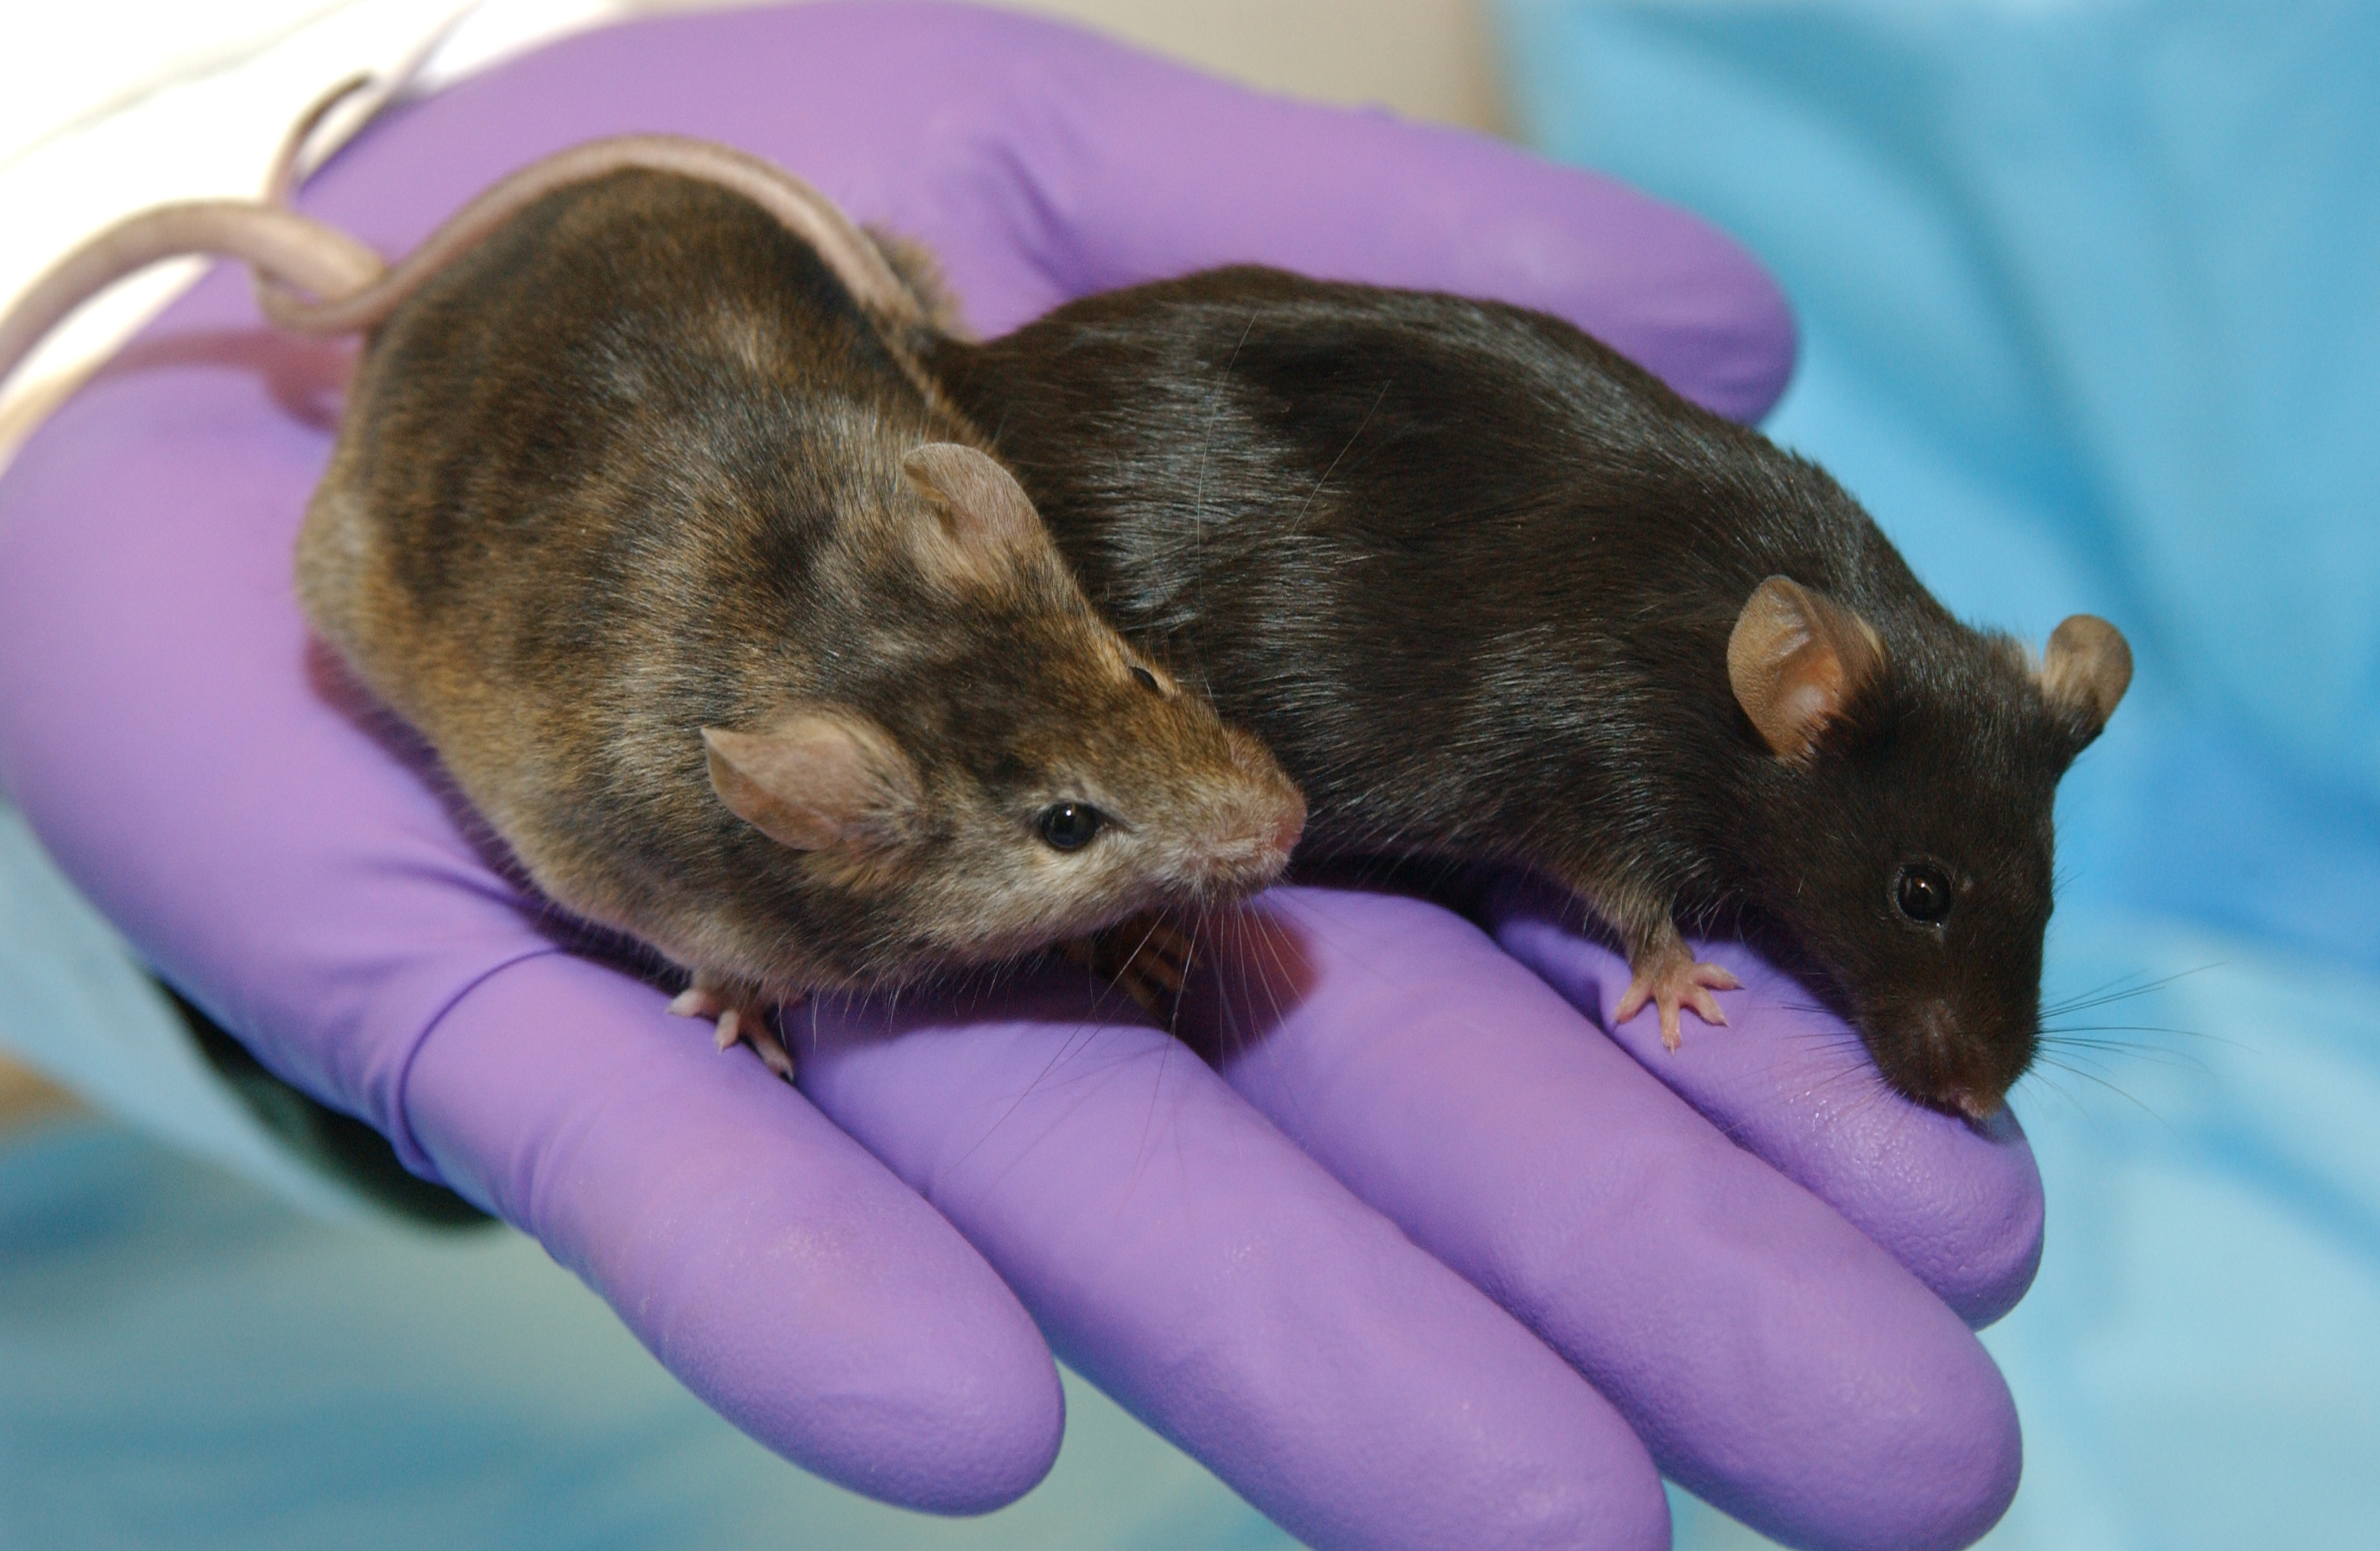 Can animal research be applied to humans